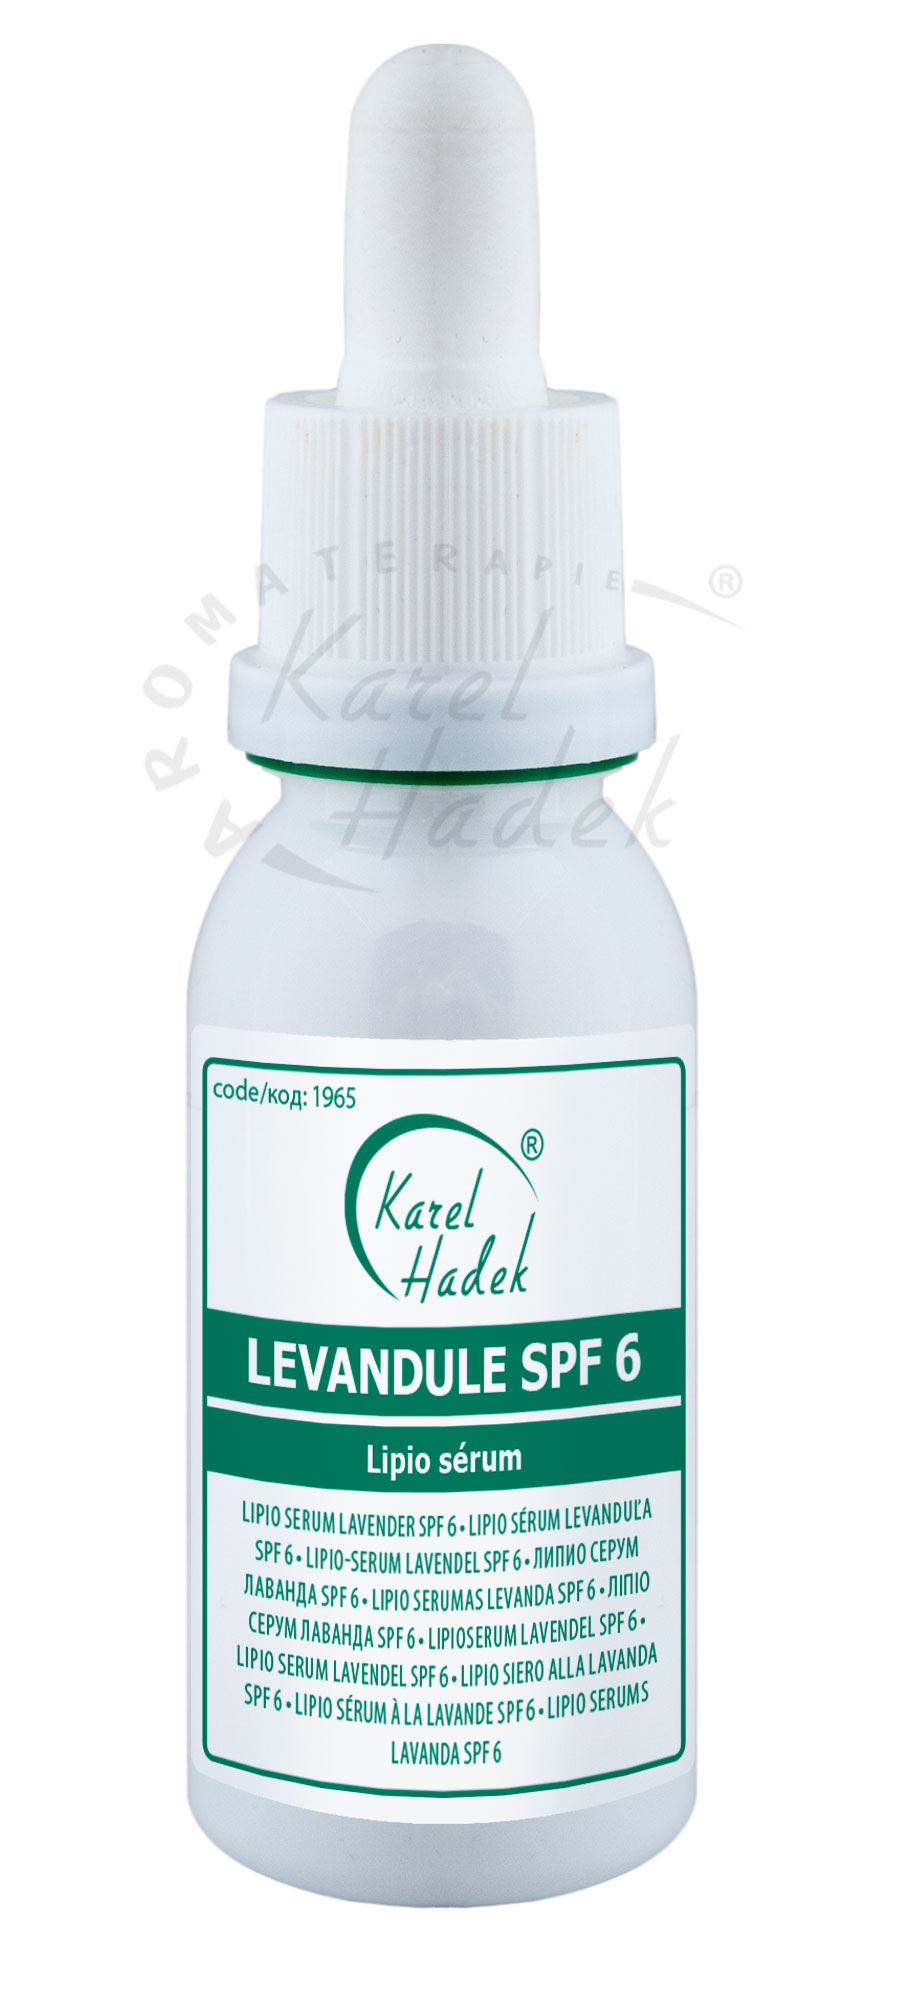 LEVANDUĽA SPF6 lipio sérum UV-faktor -35 ml